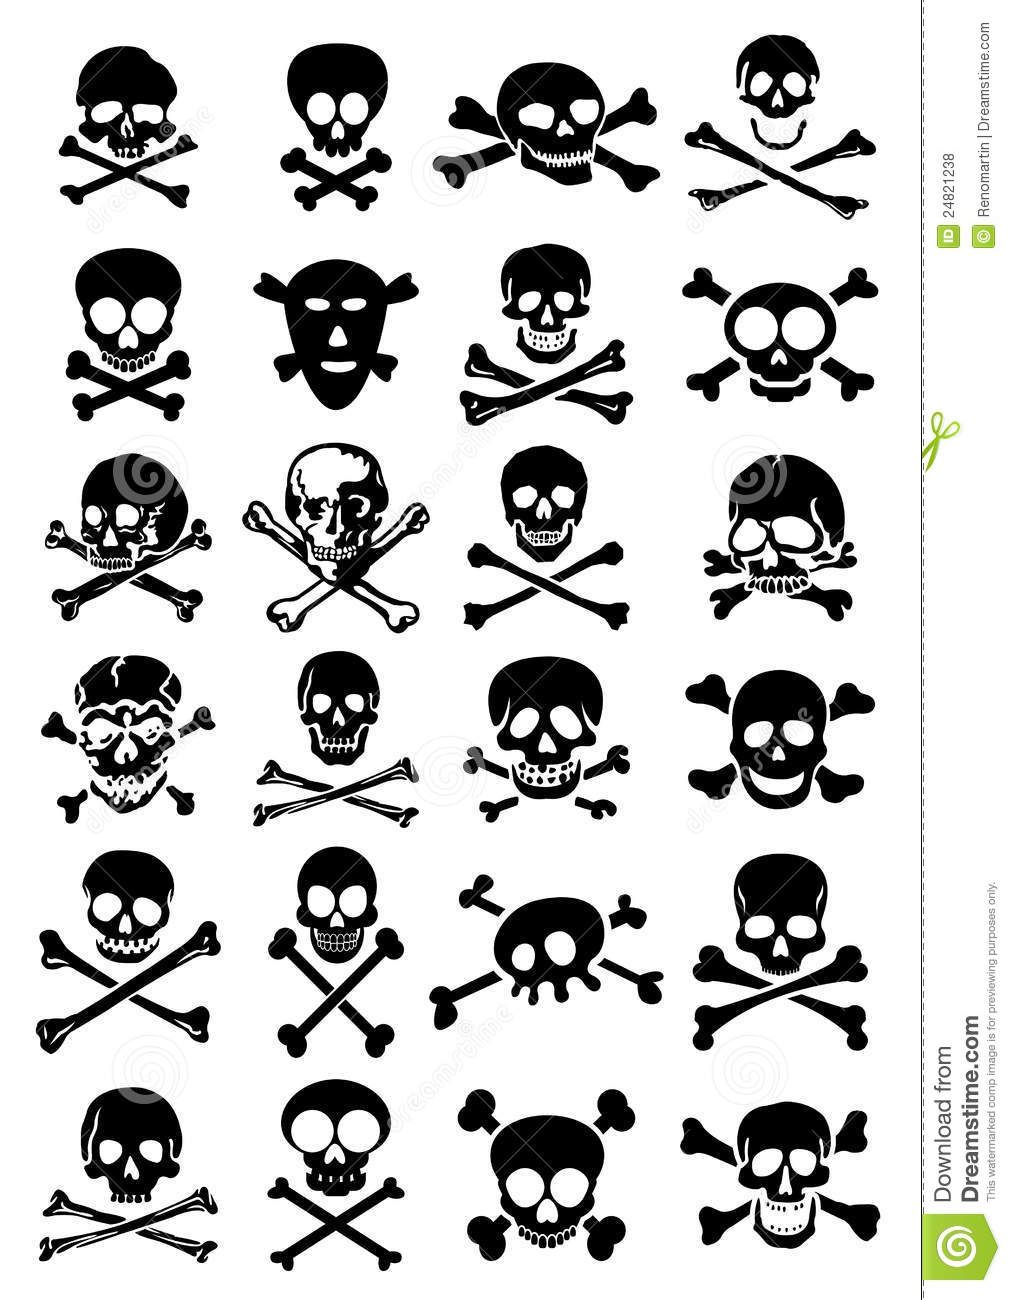 Http Thumbs Dreamstime Com Z Skulls Crossbones Vector Collection White Bac 24821238 Jpg Pirate Tattoo Simple Skull Skulls Drawing